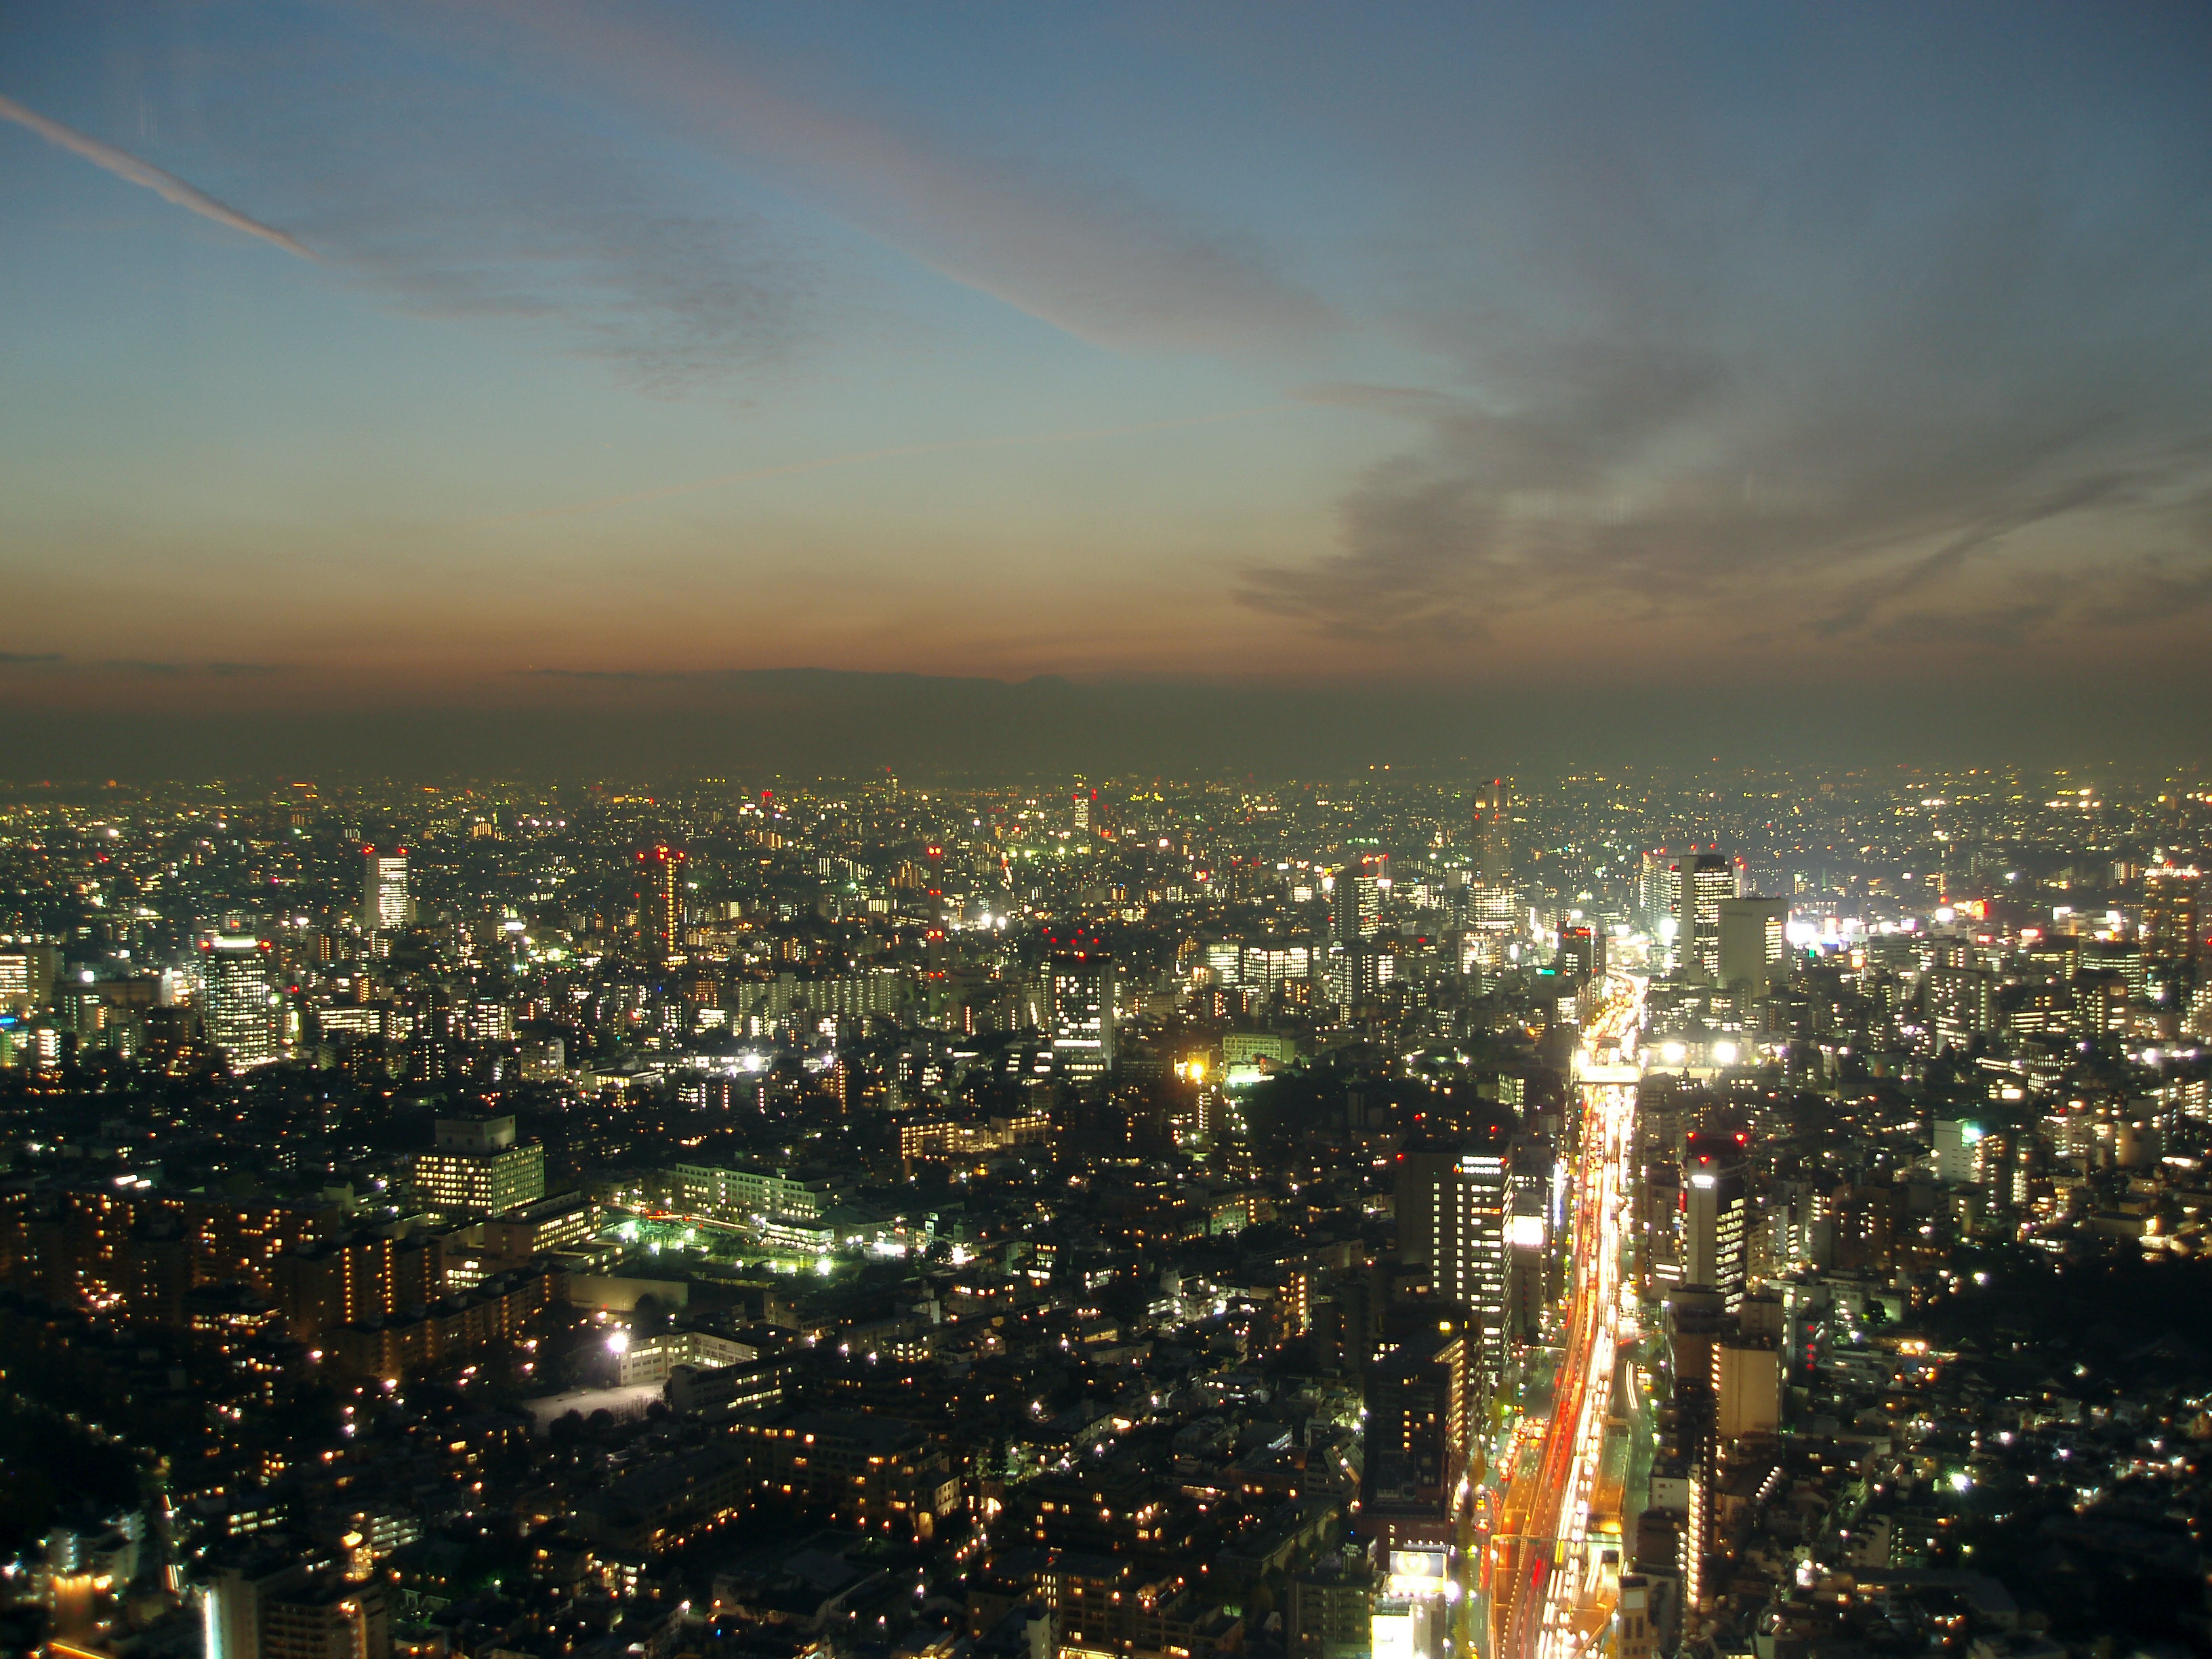 a spectacular view of tokyo at night, colourful lights and a dusky sky